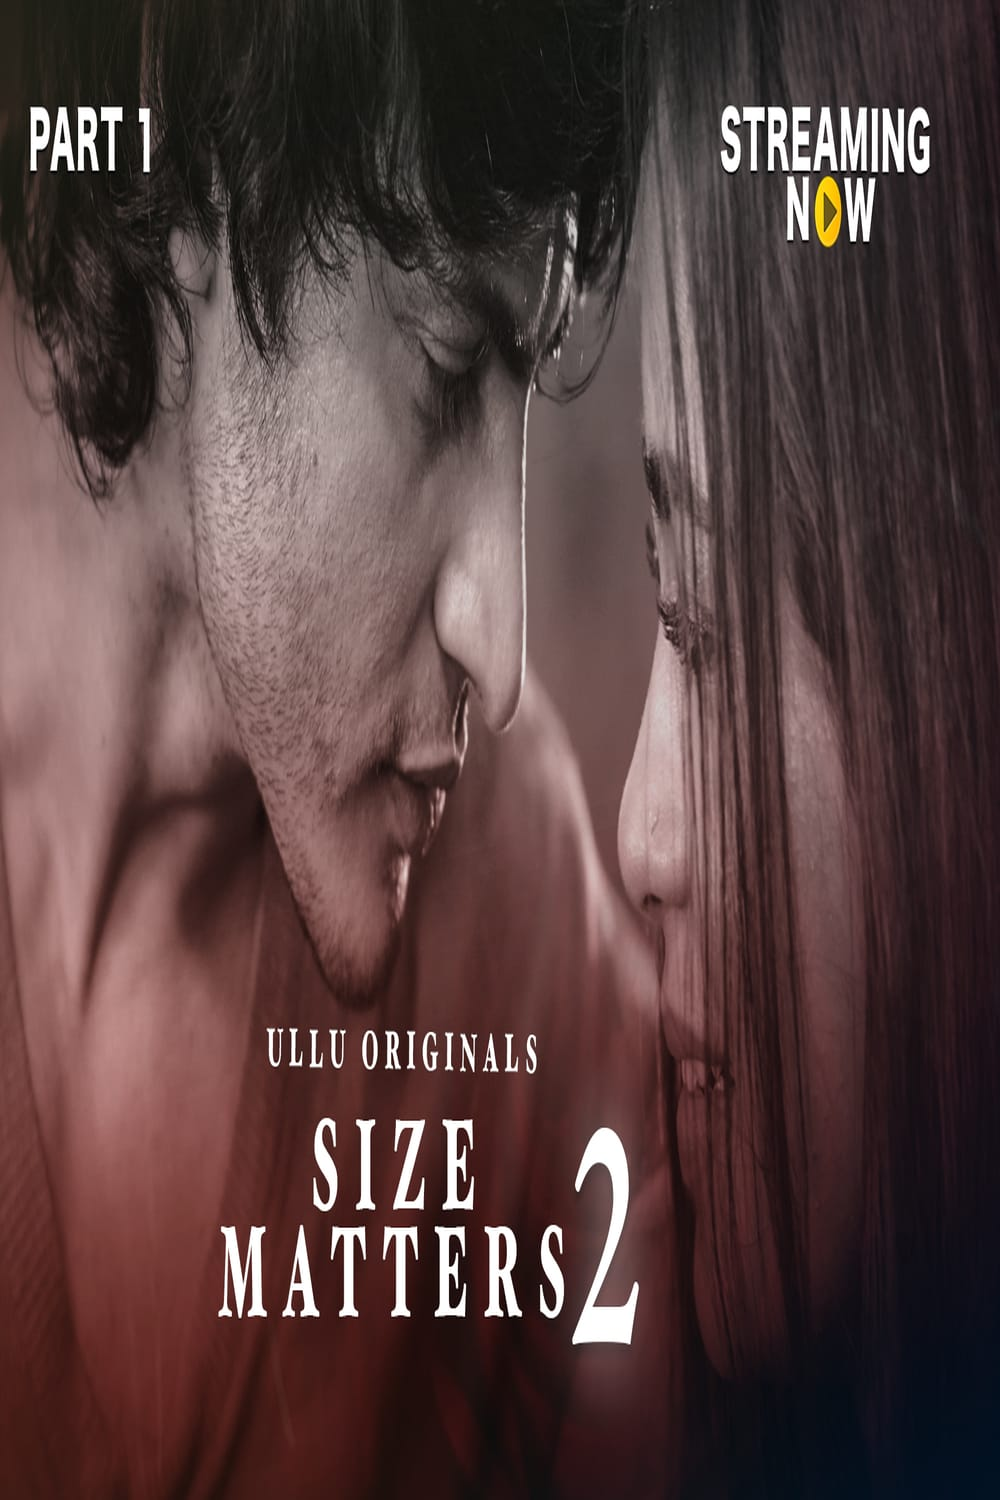 Size Matters 2 (2020) Hindi S02 ( Part 2 ) | x264 WEB-DL | 720p | 480p | Download ULLU Exclusive Series | Watch Online | GDrive | Direct Links